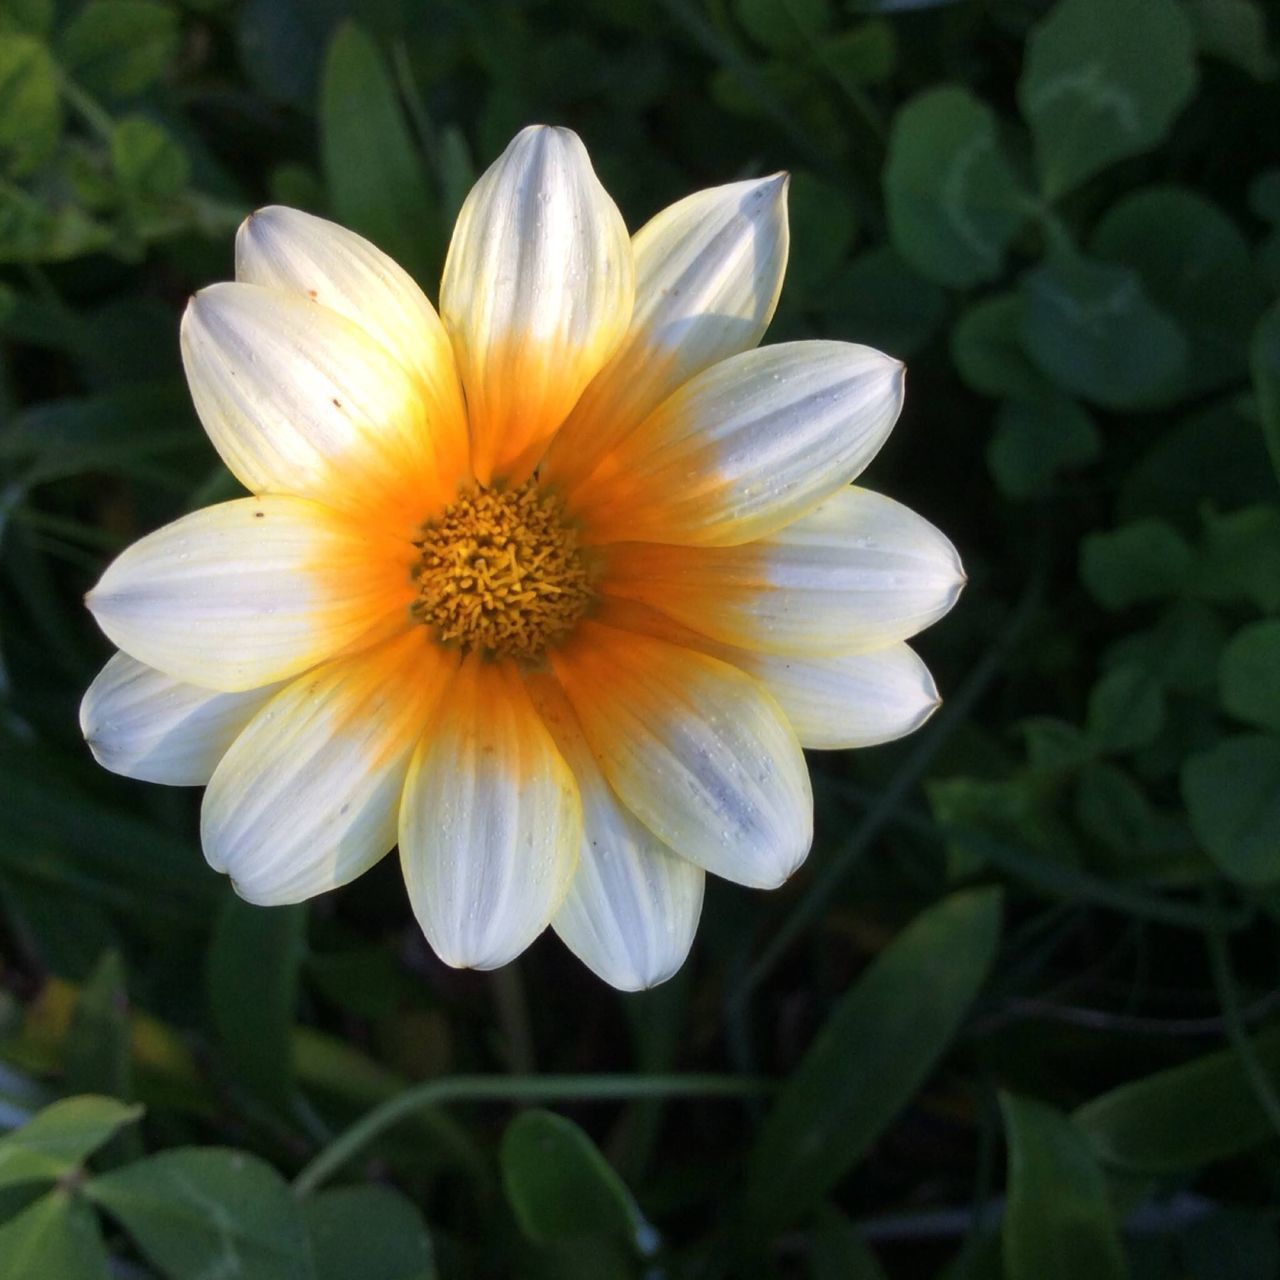 Flower White Flower Yellow Centered Flowers Natural Beauty